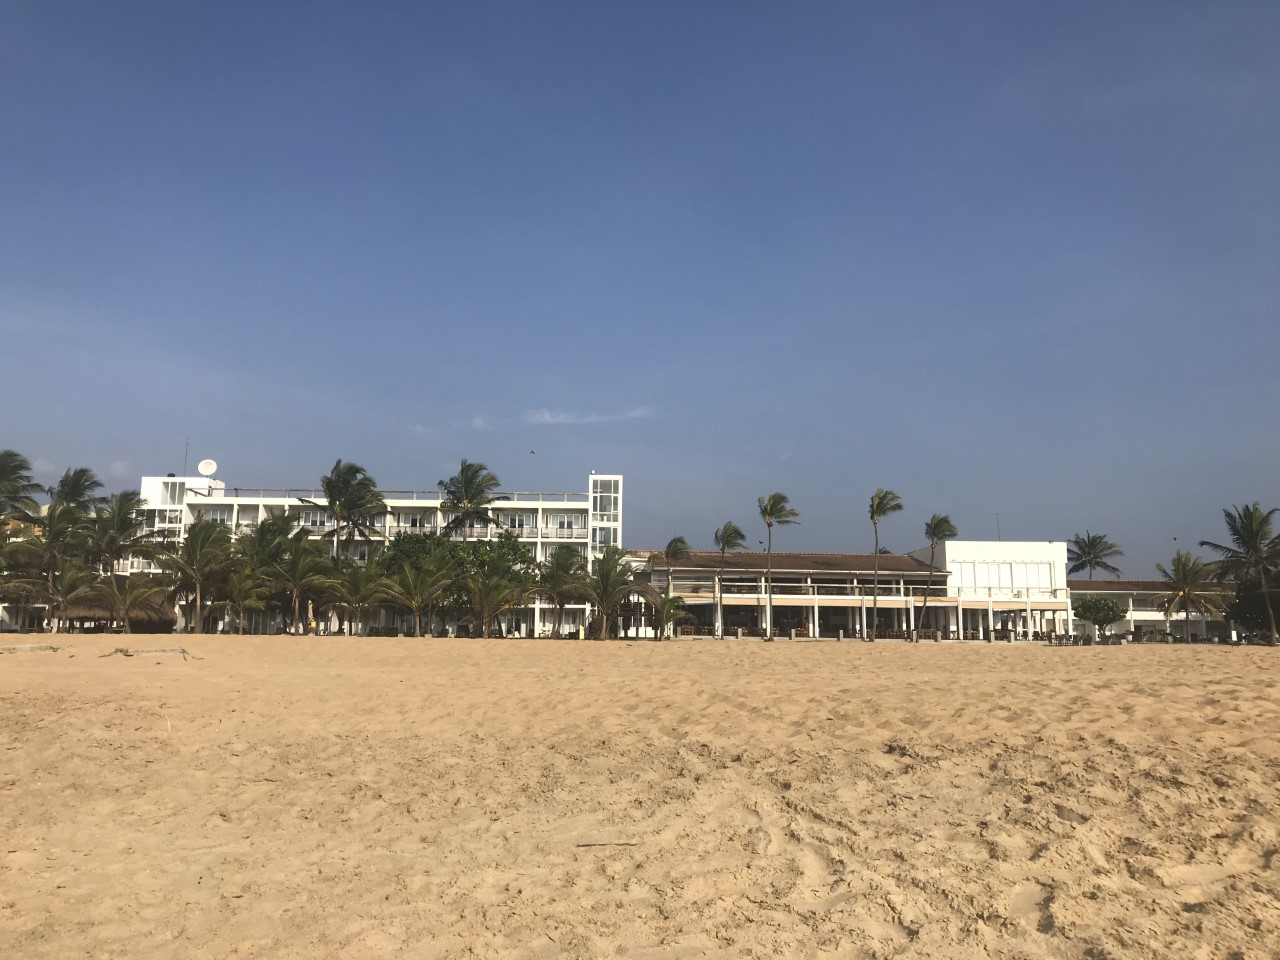 Jetwing sea hotel